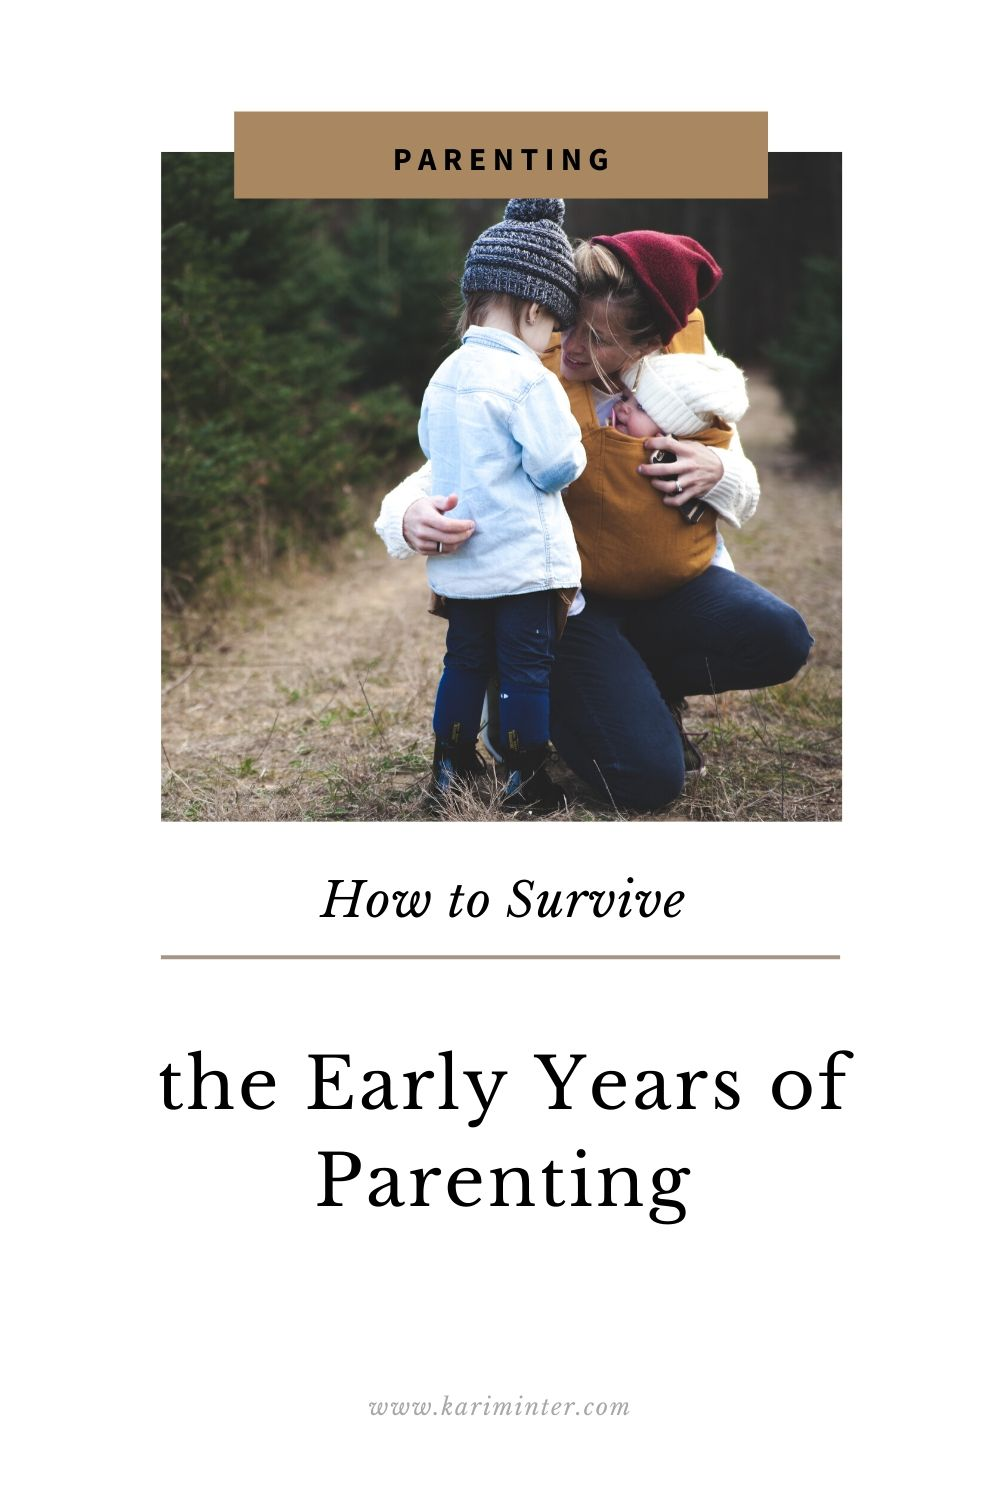 How to survive the early years of parenting